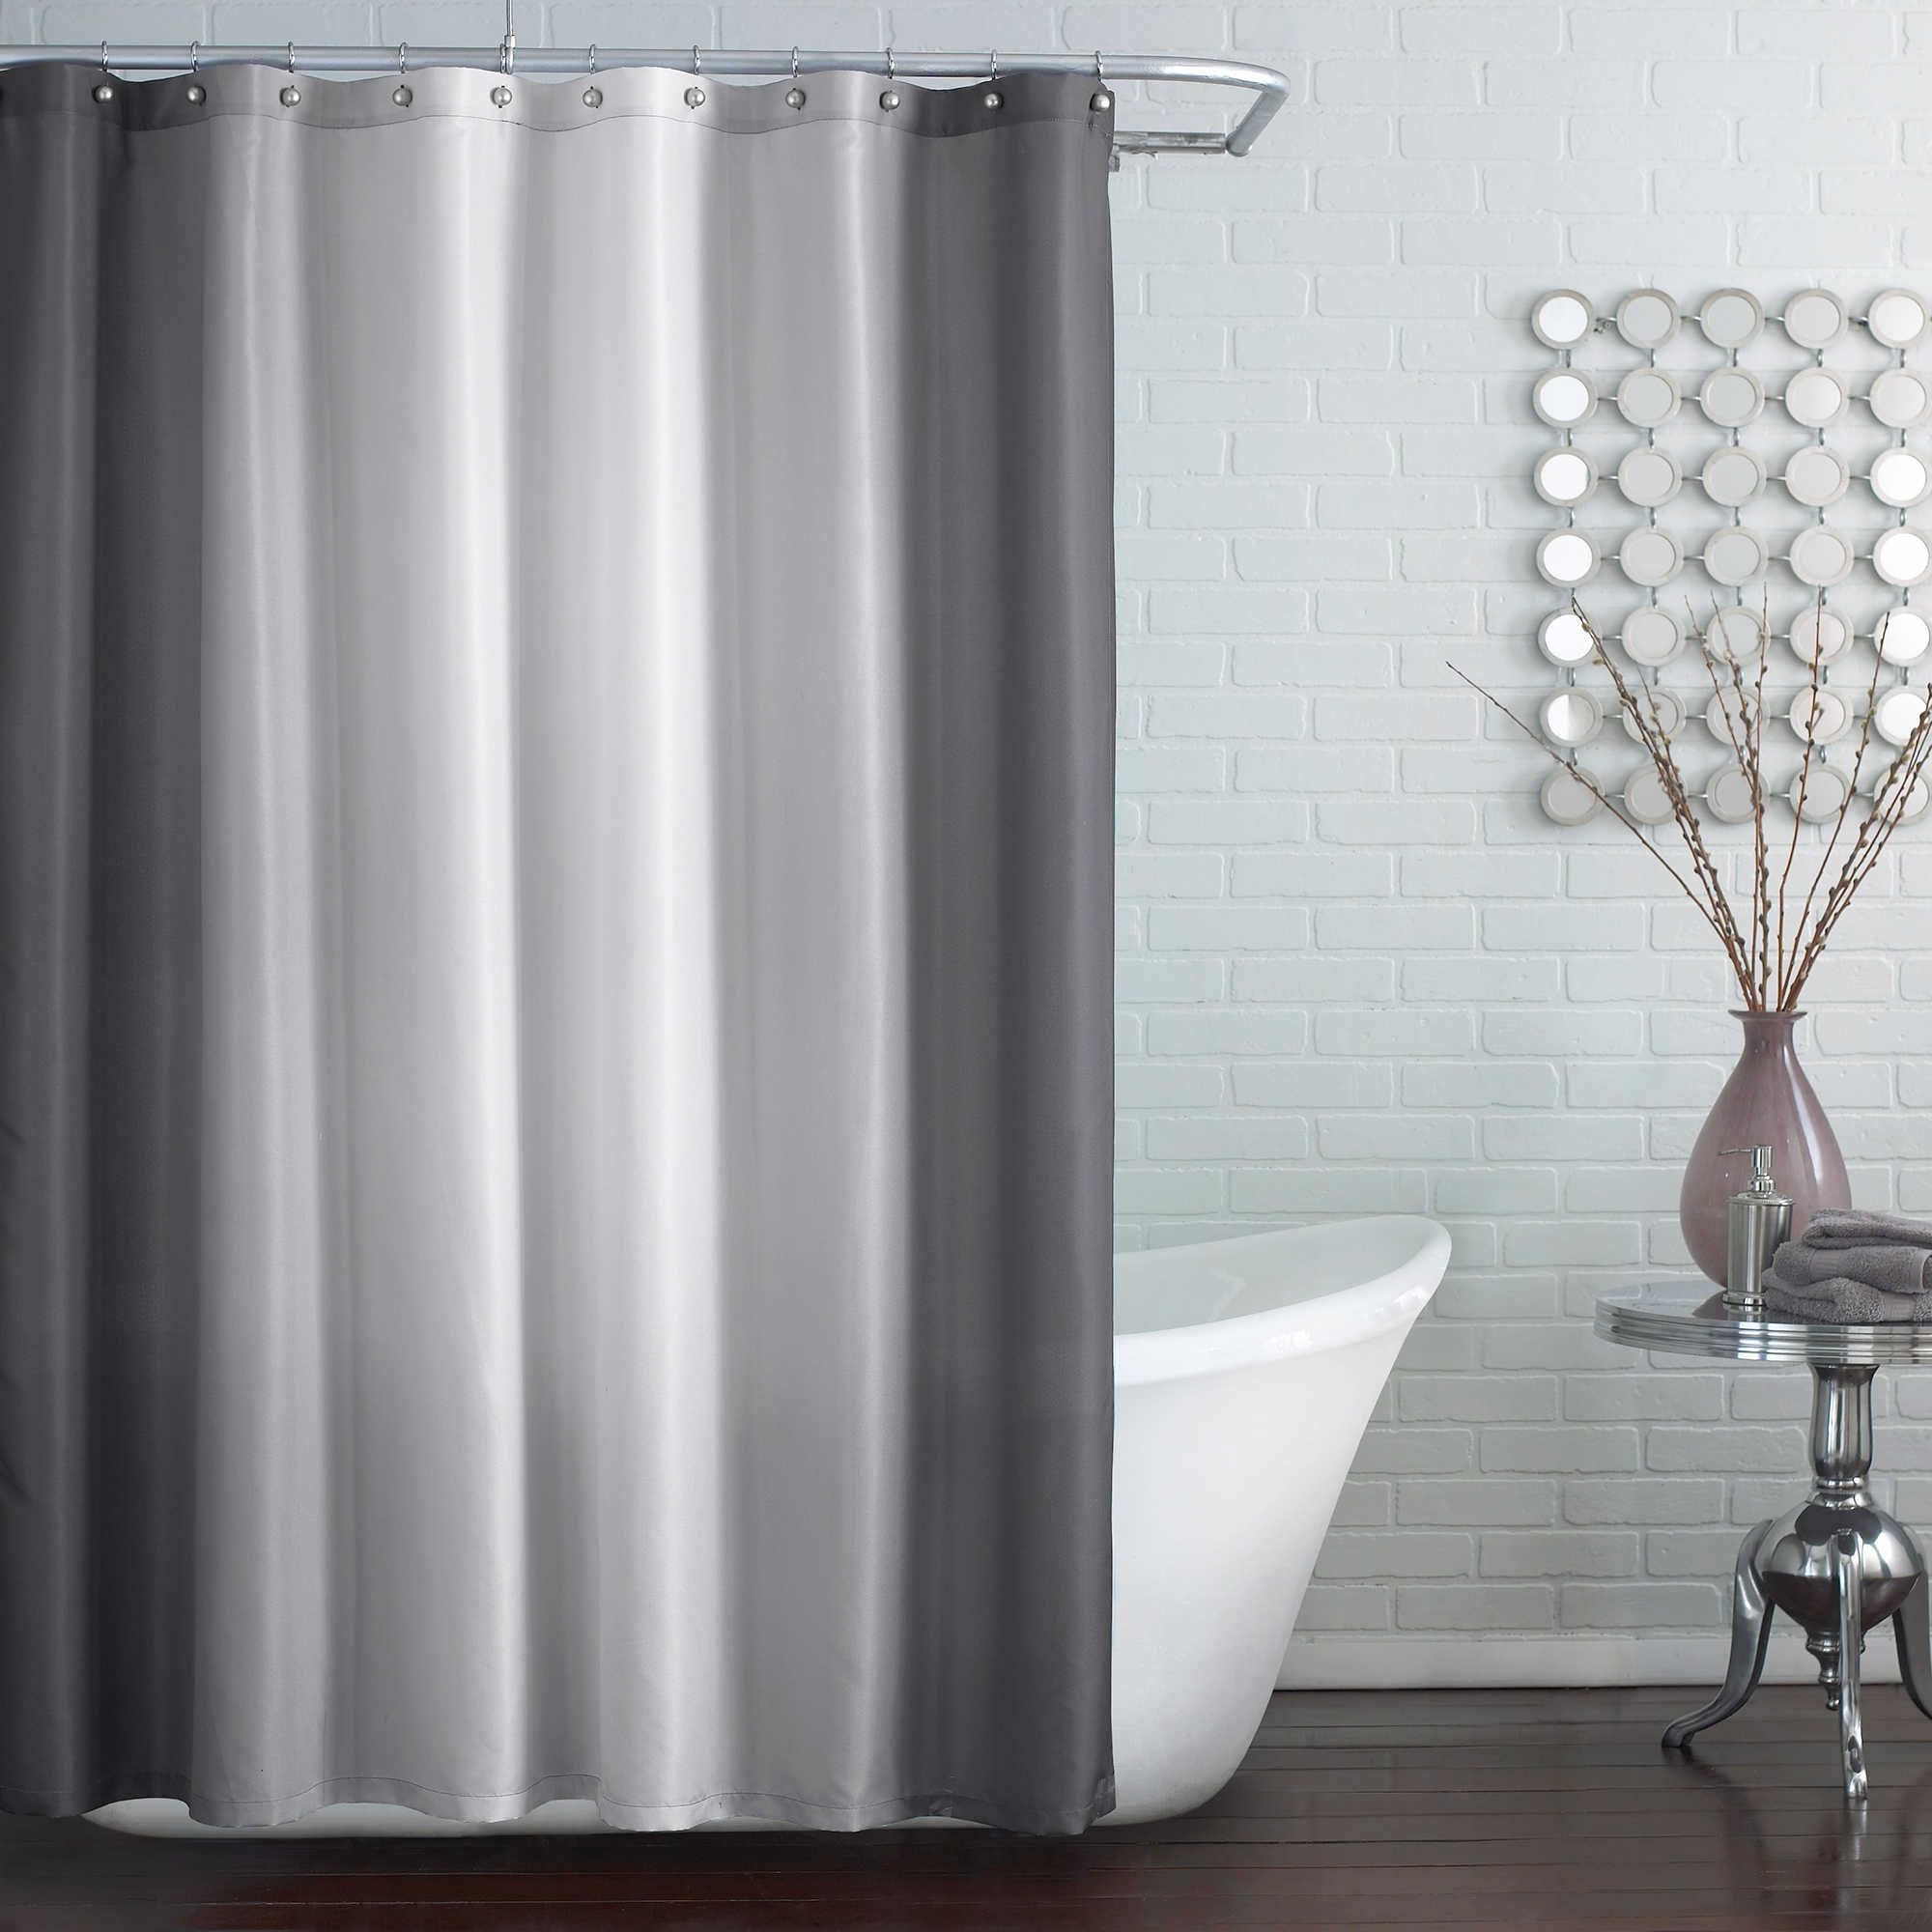 Fancy grey shower curtains legalizecrew pinterest